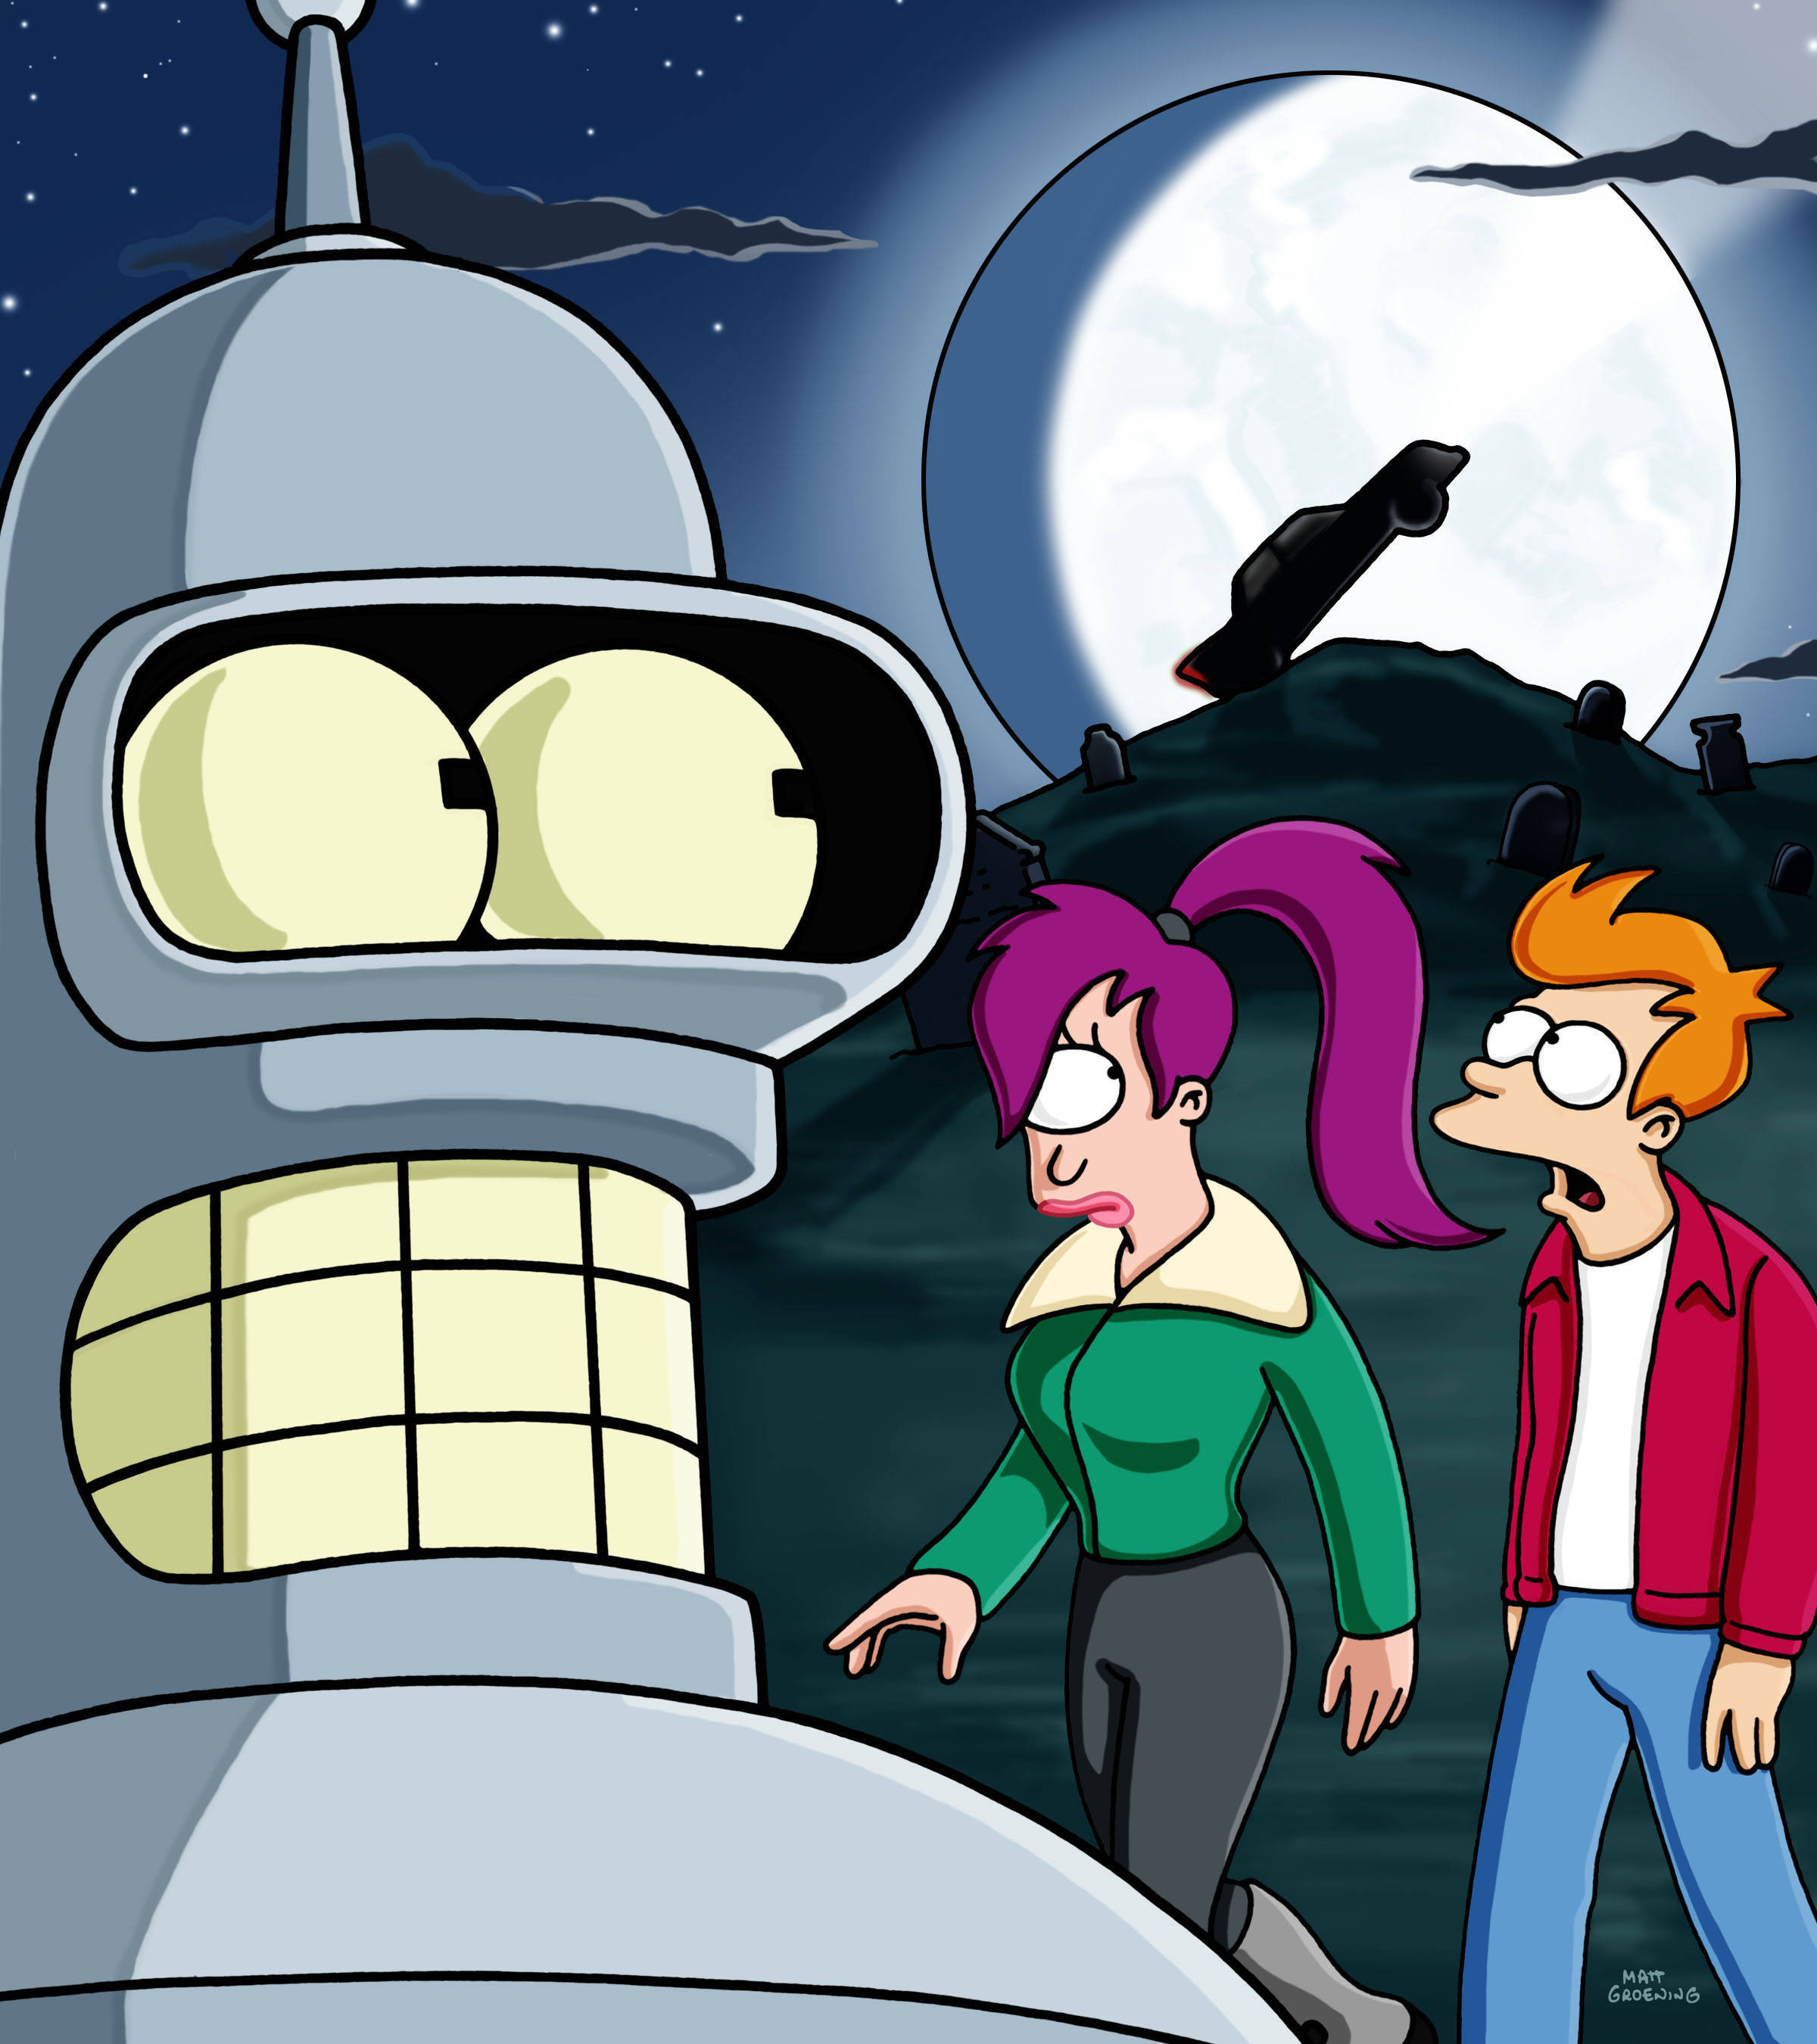 Futurama Bender fry turanga HD Wallpaper